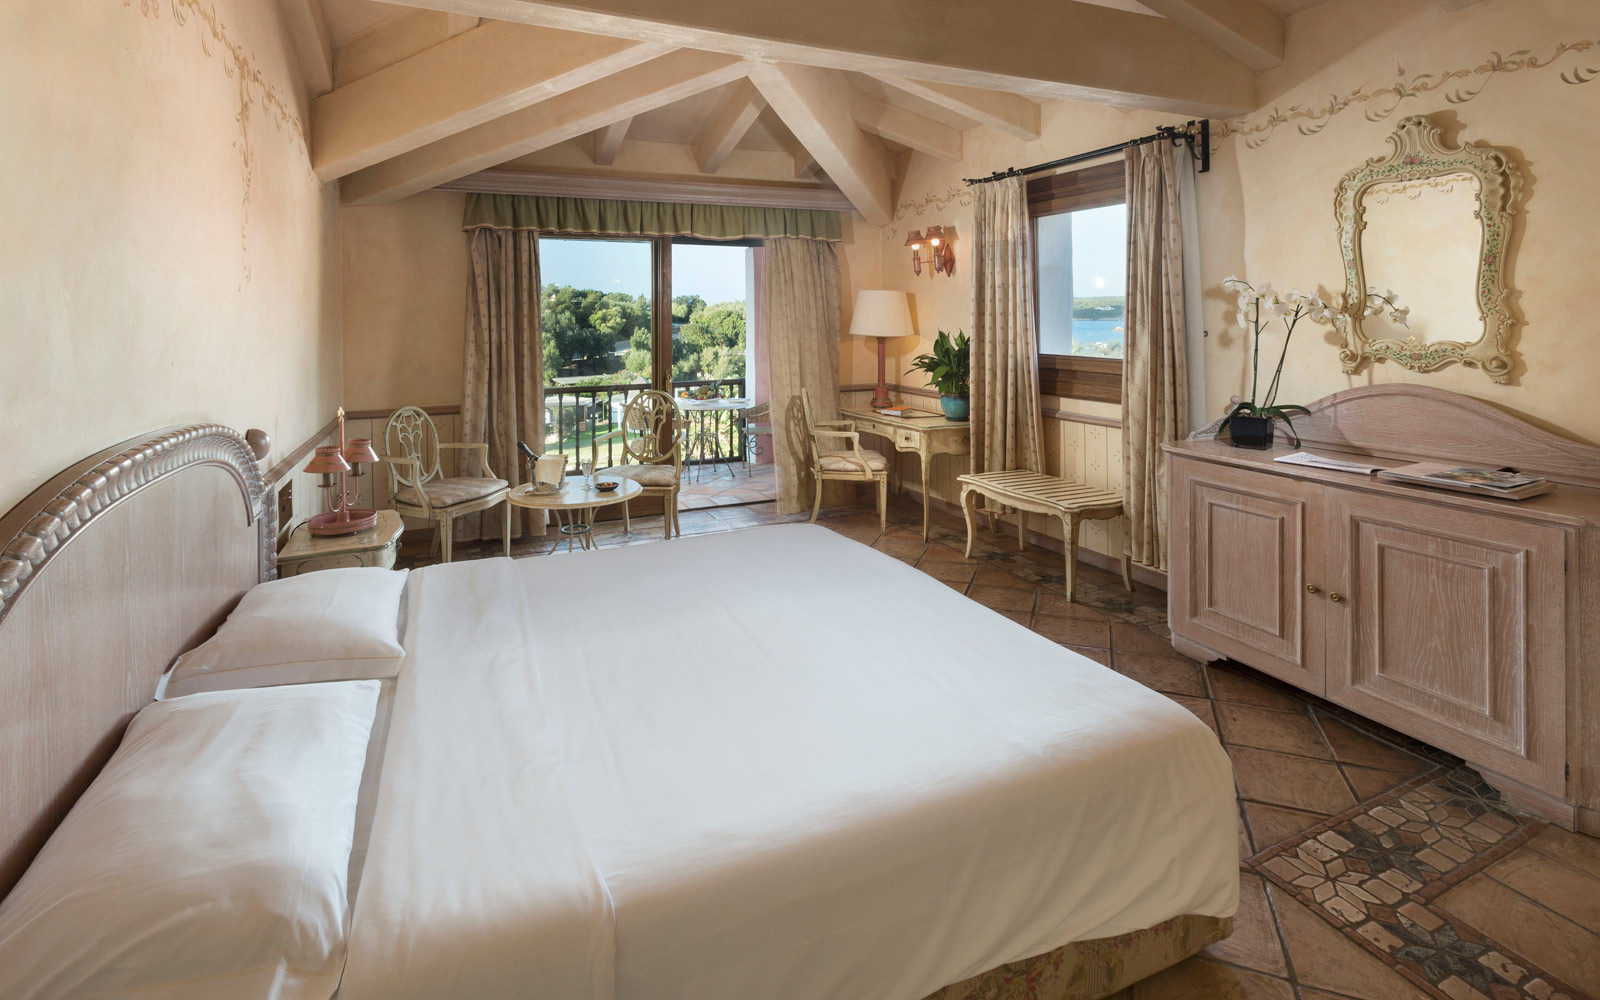 Junior Suite at Le Palme